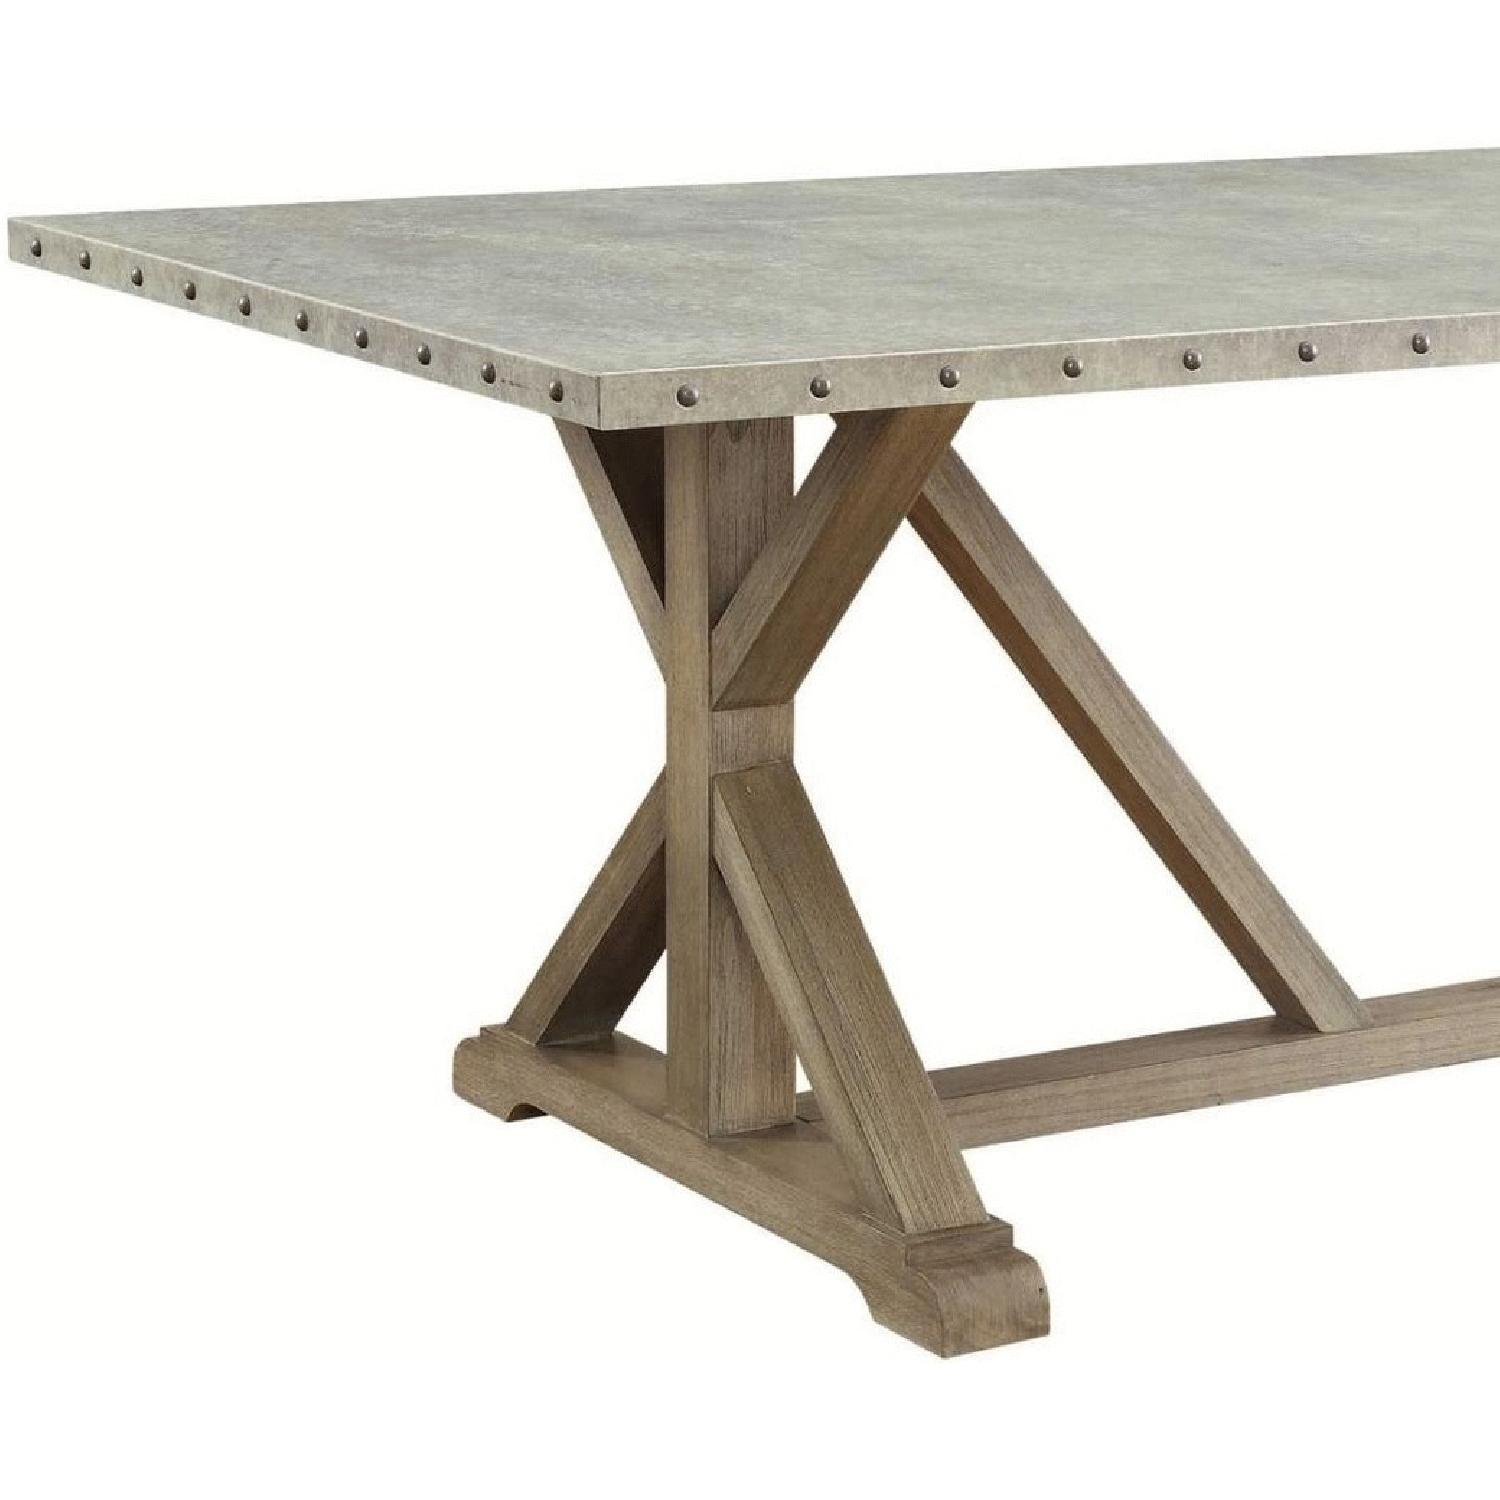 Industrial Modern Dining Table w/ Zinc Metal Wrapped Top - image-1